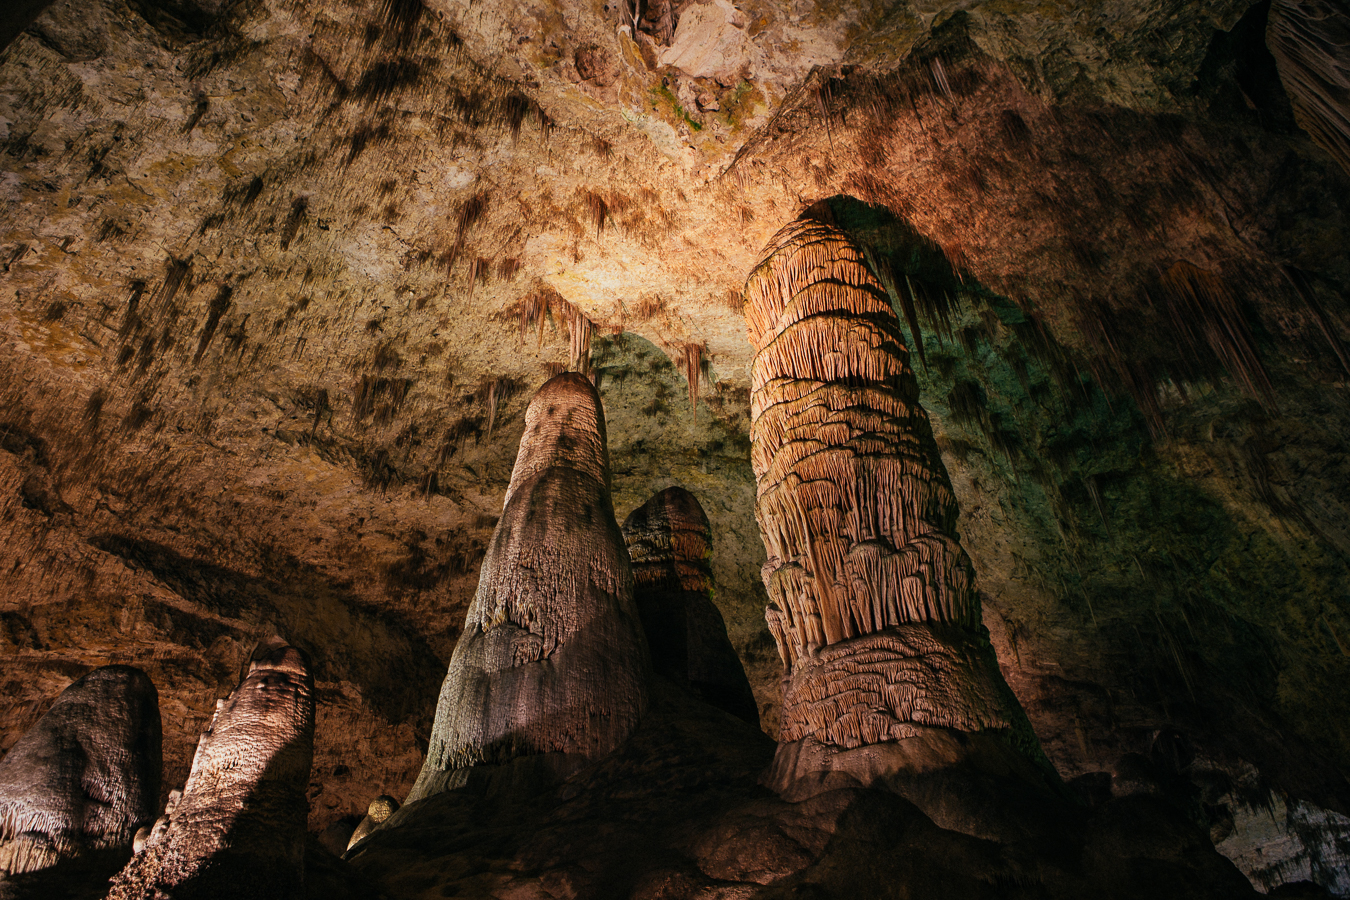 These stalagmites are HUGE, nearly60' tall!